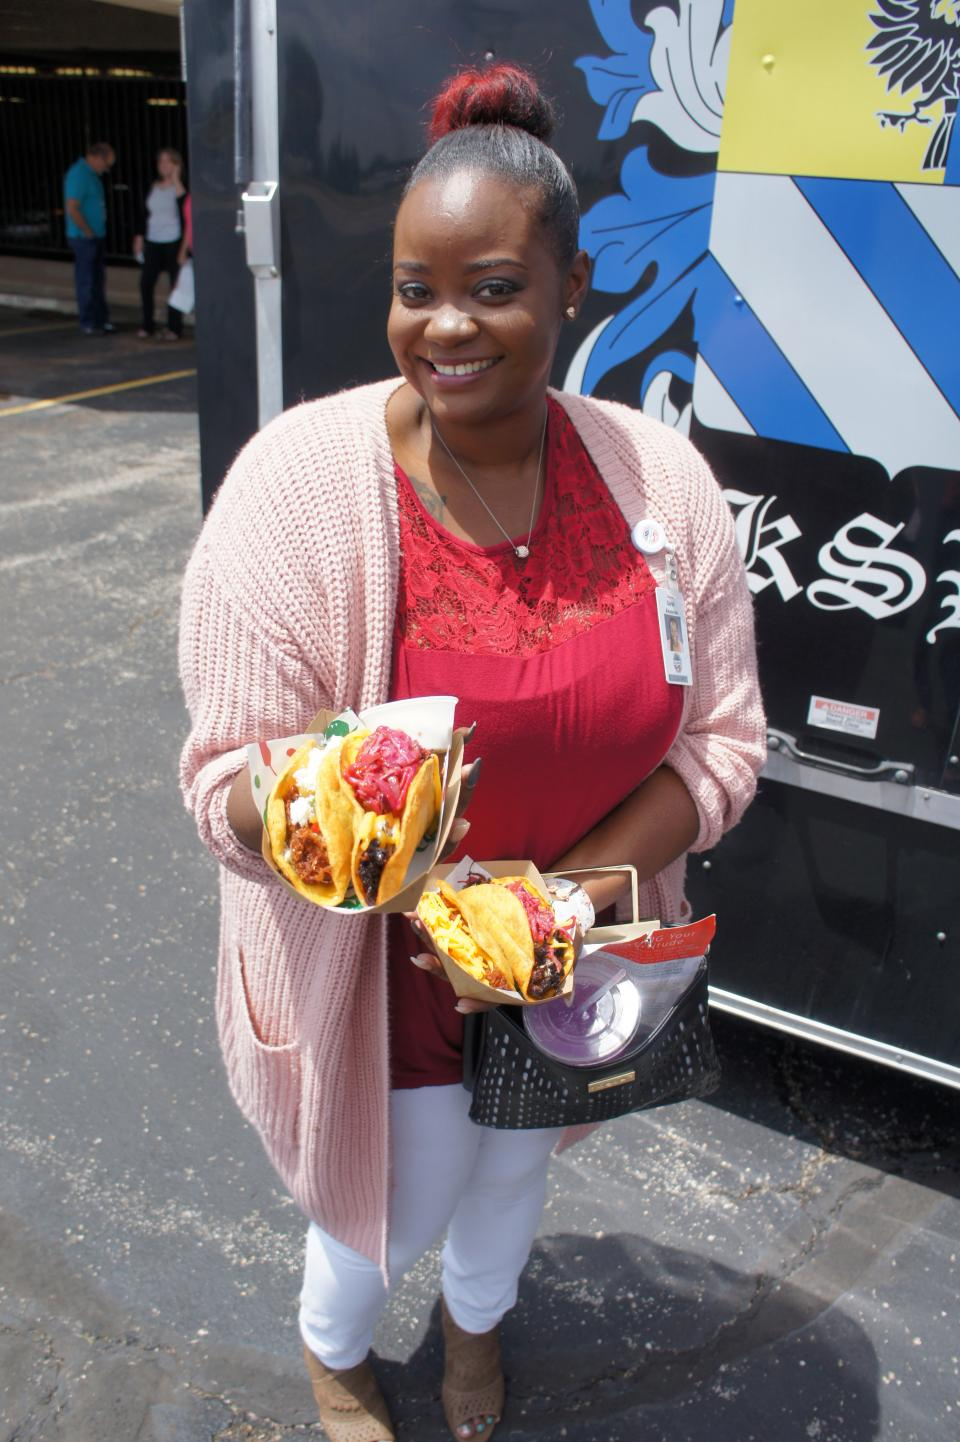 An AF Colleague shows off her tacos from a food truck during a parking lot event.